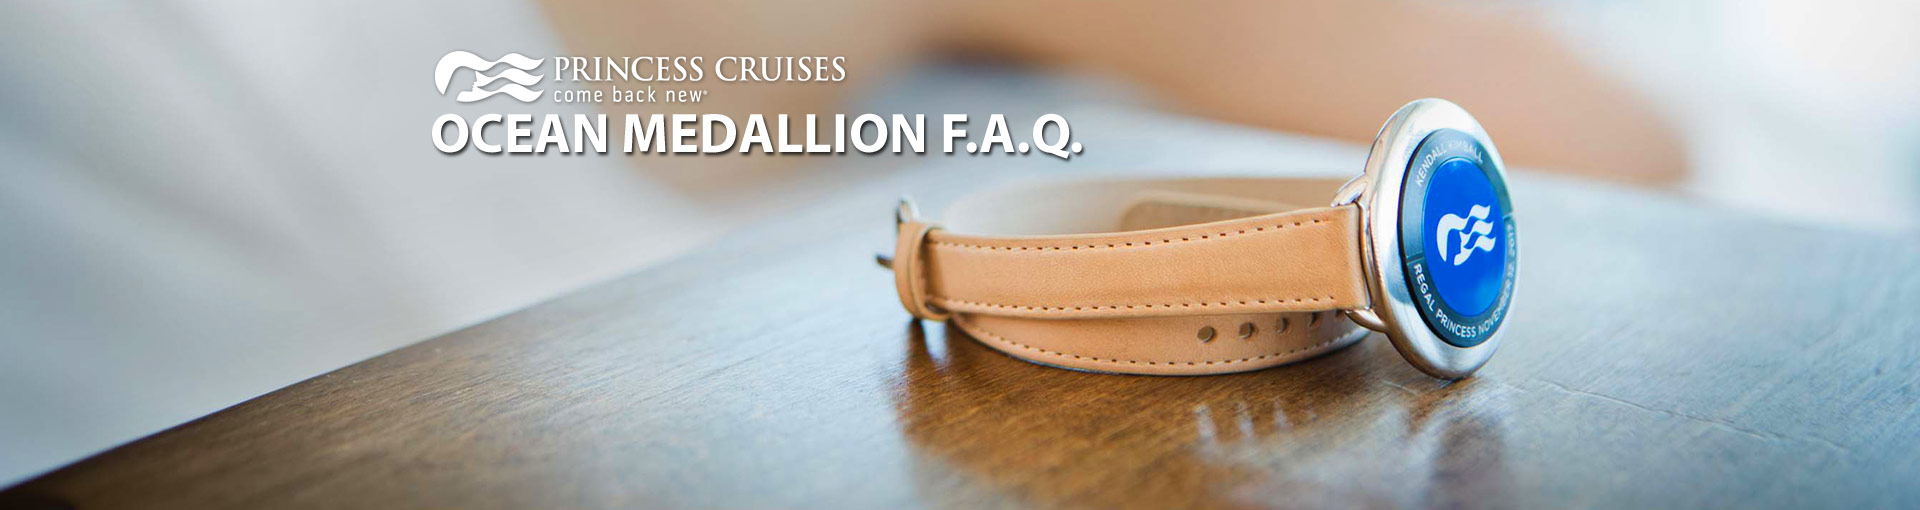 Princess Cruises - Ocean Medallion FAQ